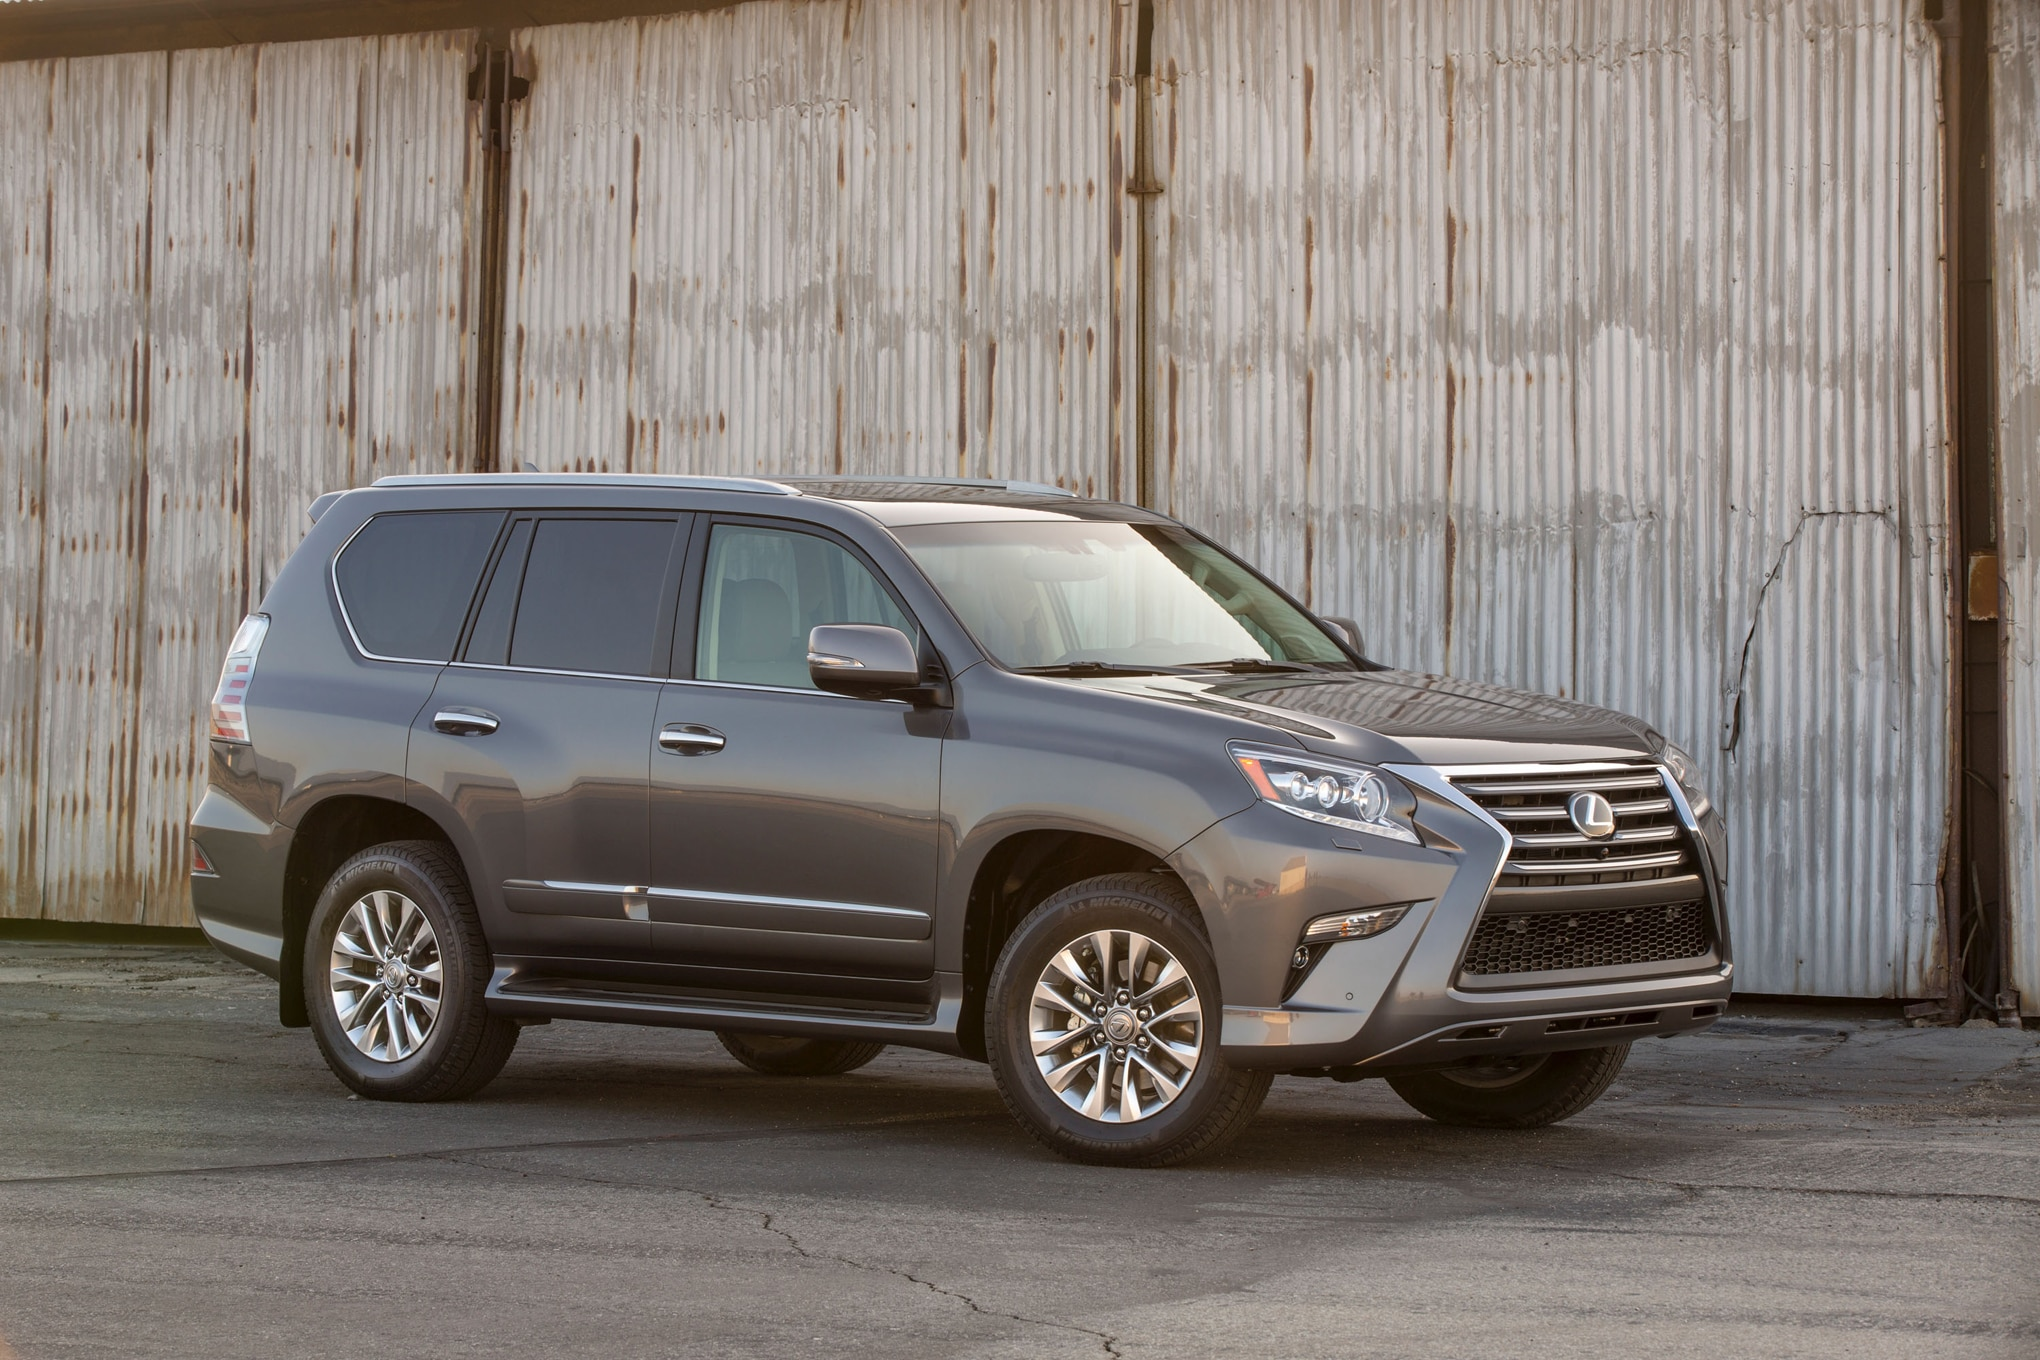 2016 lexus gx460 quick take review automobile magazine. Black Bedroom Furniture Sets. Home Design Ideas